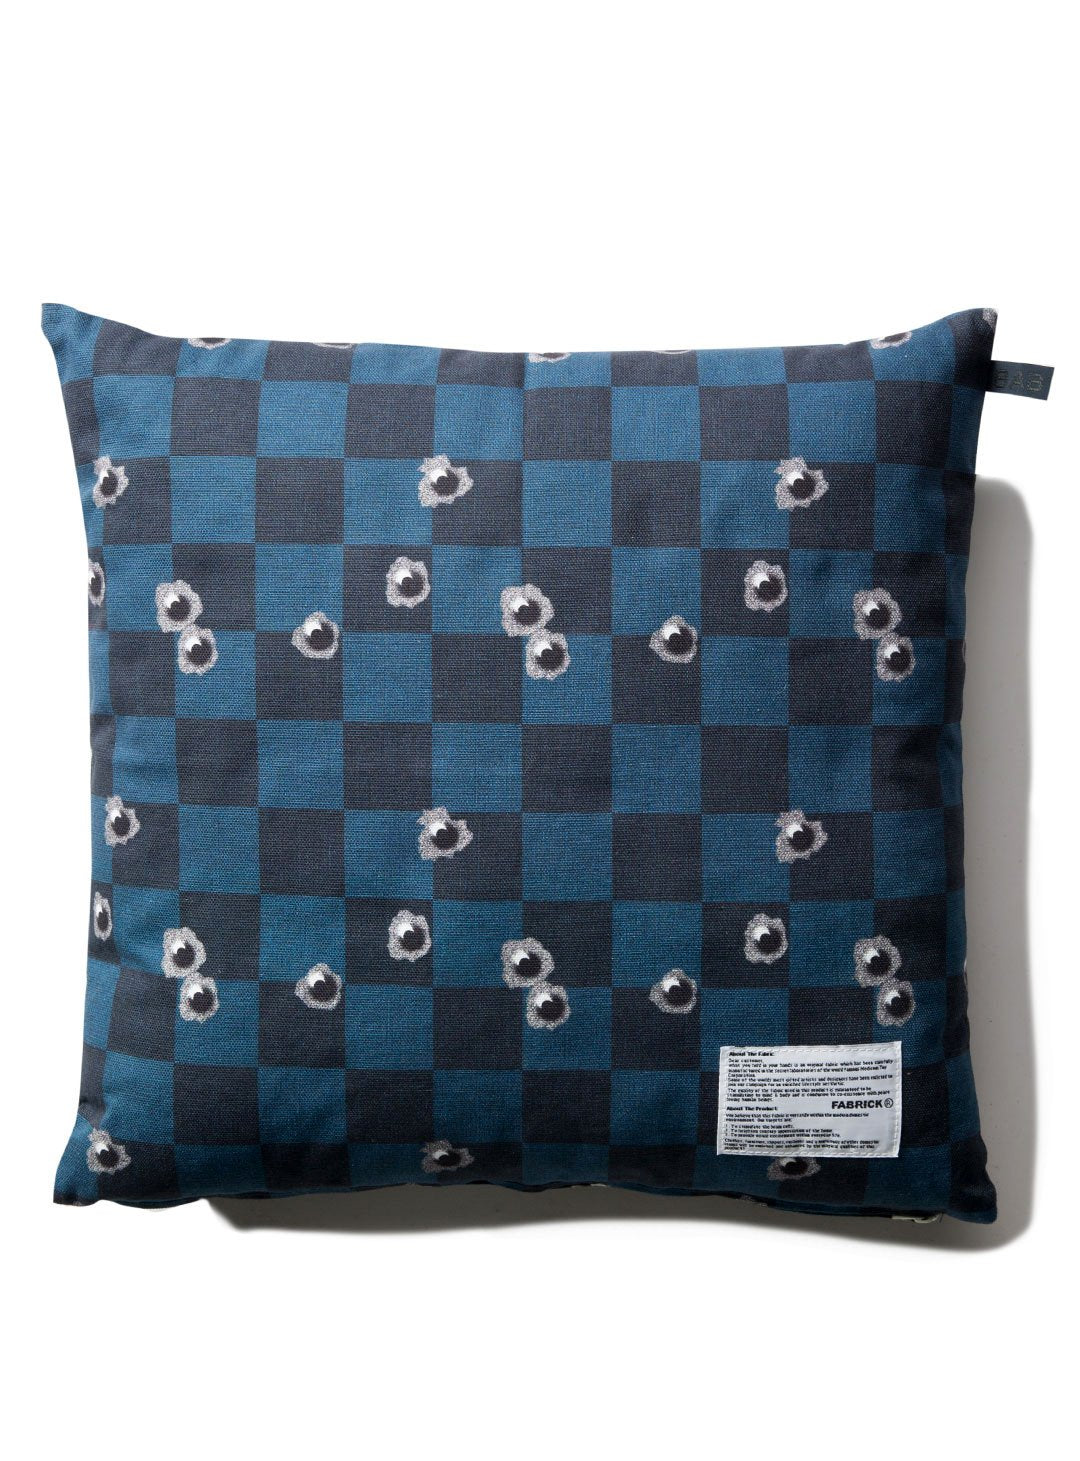 BABYLON L.A. SQUARE CUSHION COVER + PILLOW